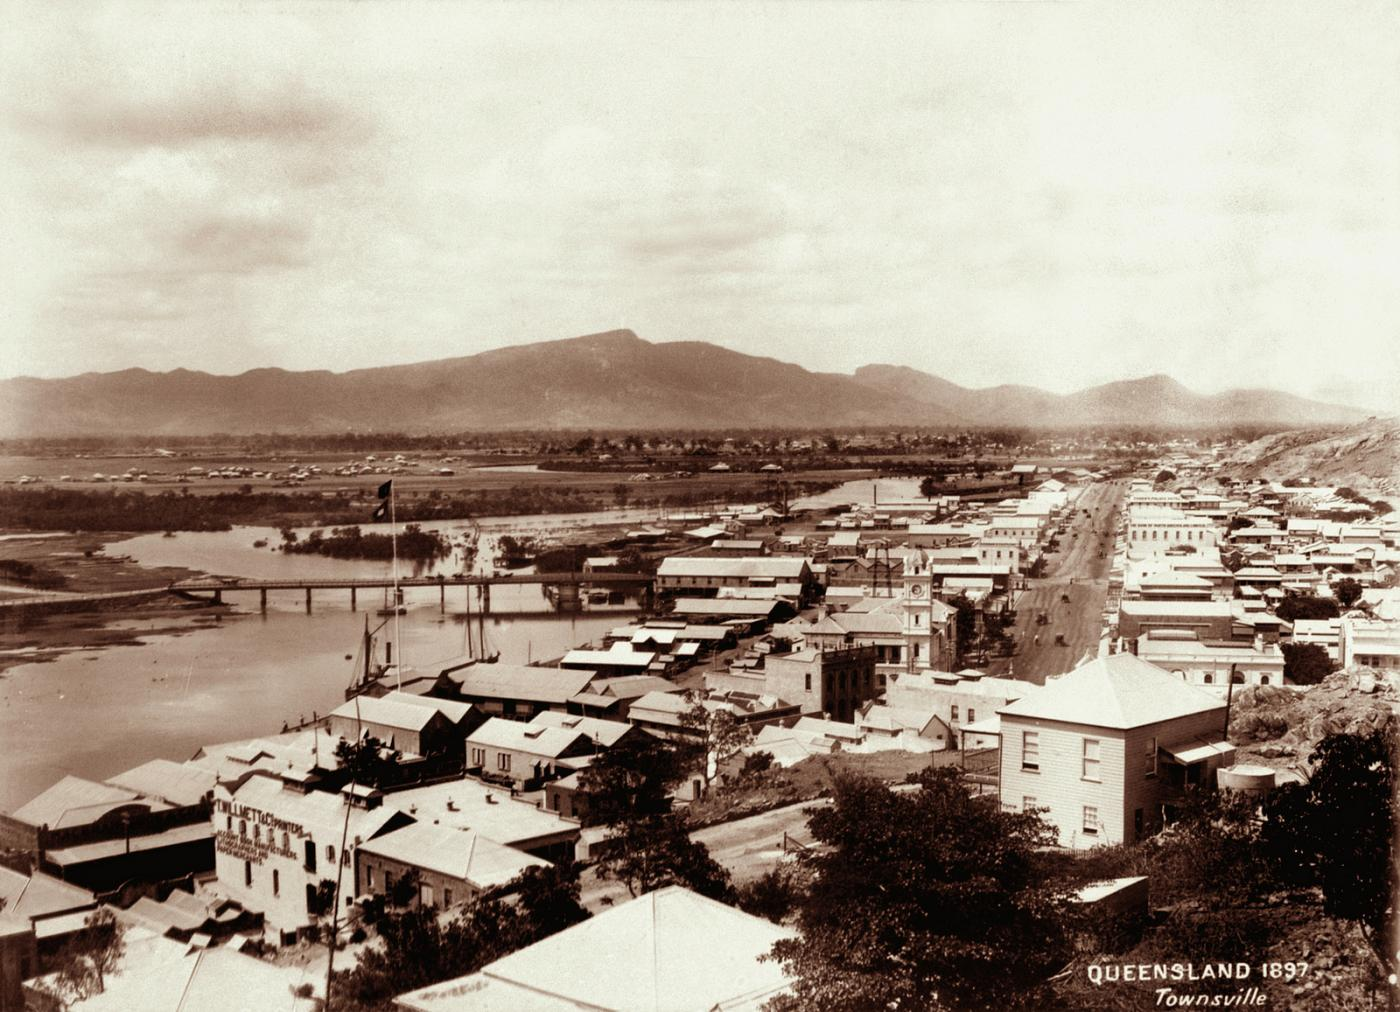 Aerial view of the developing city of Townsville from the 1890s